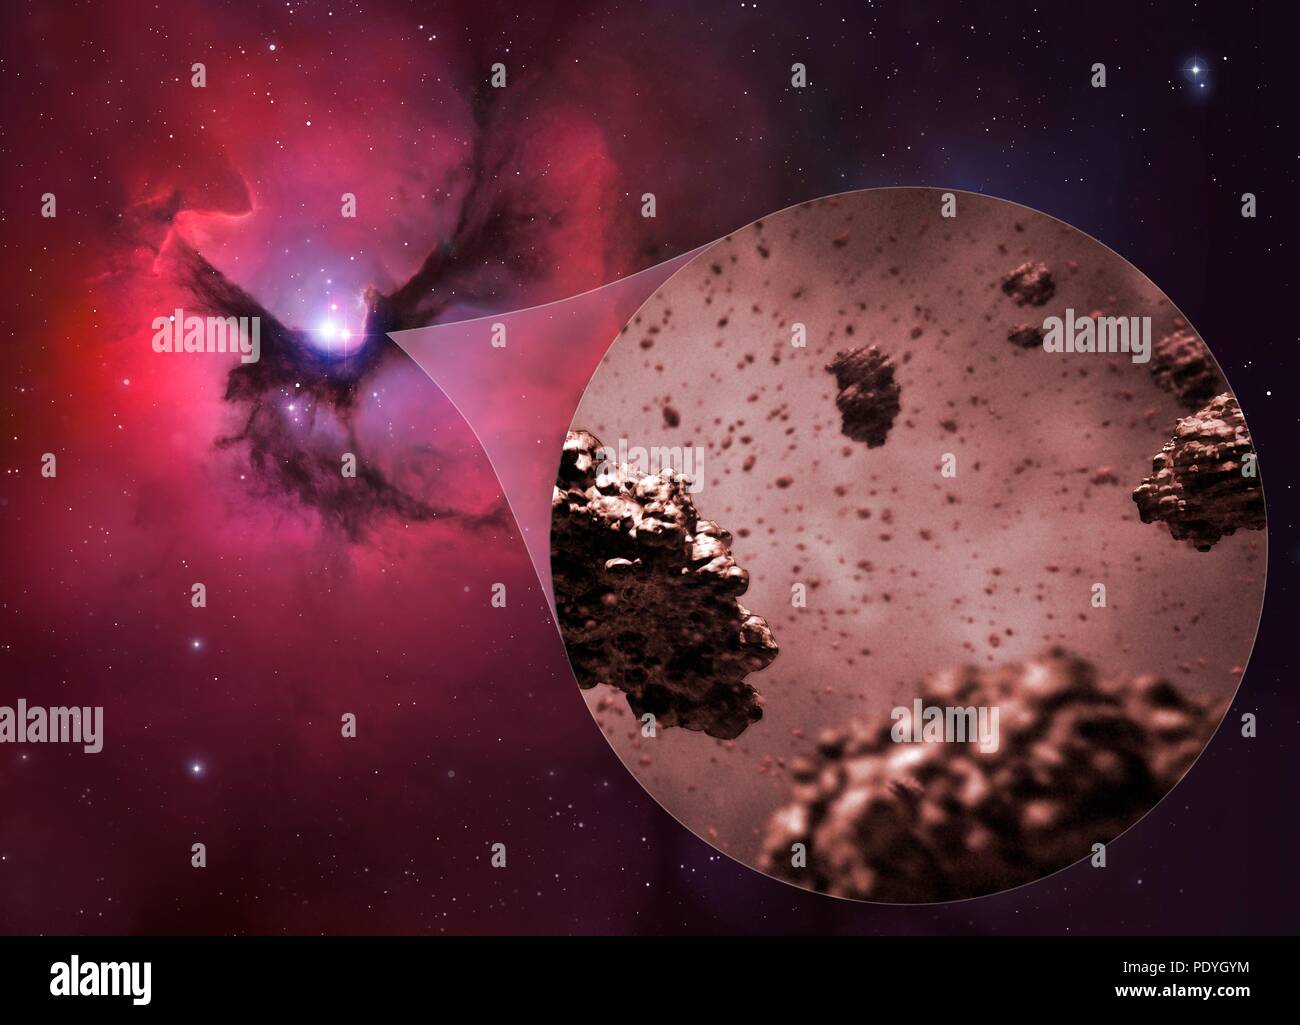 Illustration of the grains found within interstellar dust and giant molecular clouds. Called cosmic dust or space dust, these particles are up to 0.1 micrometres across, but can be as small as just a few molecules. The grains are made of dust grains and aggregates of dust grains. - Stock Image